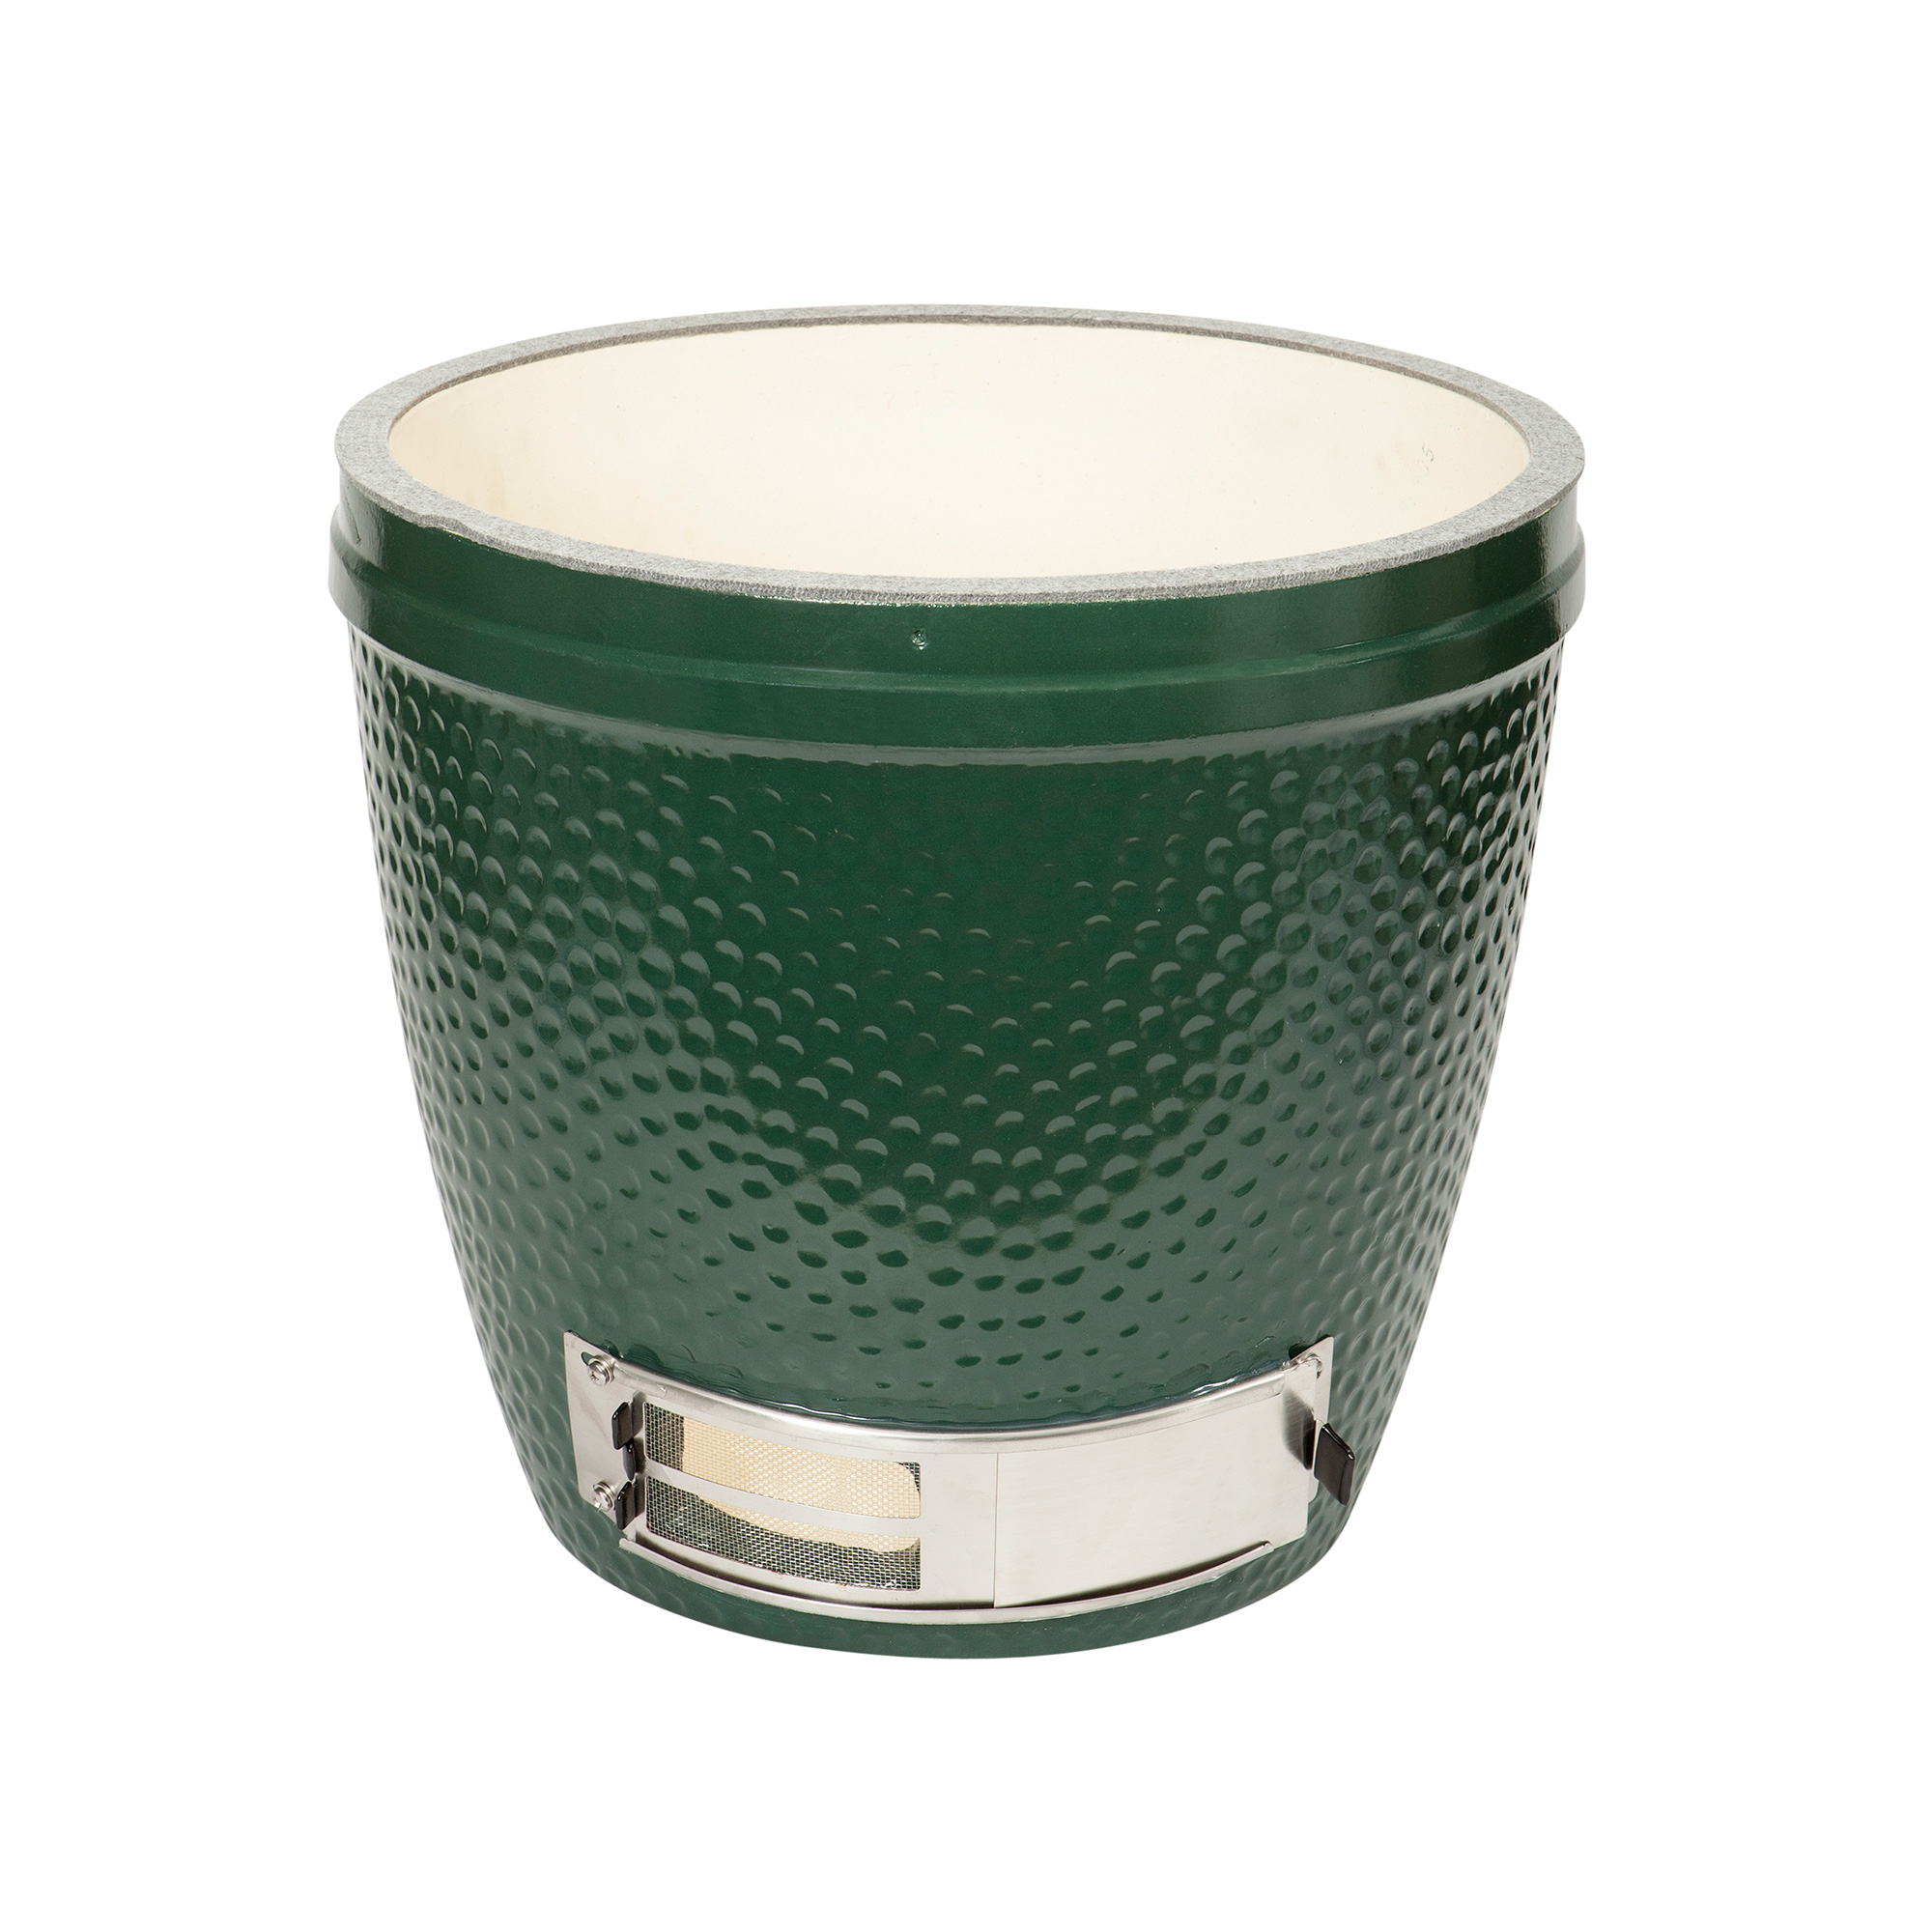 Outdoor Küche Mit Green Egg Keramik Basis M Online Shop Big Green Egg Schweiz